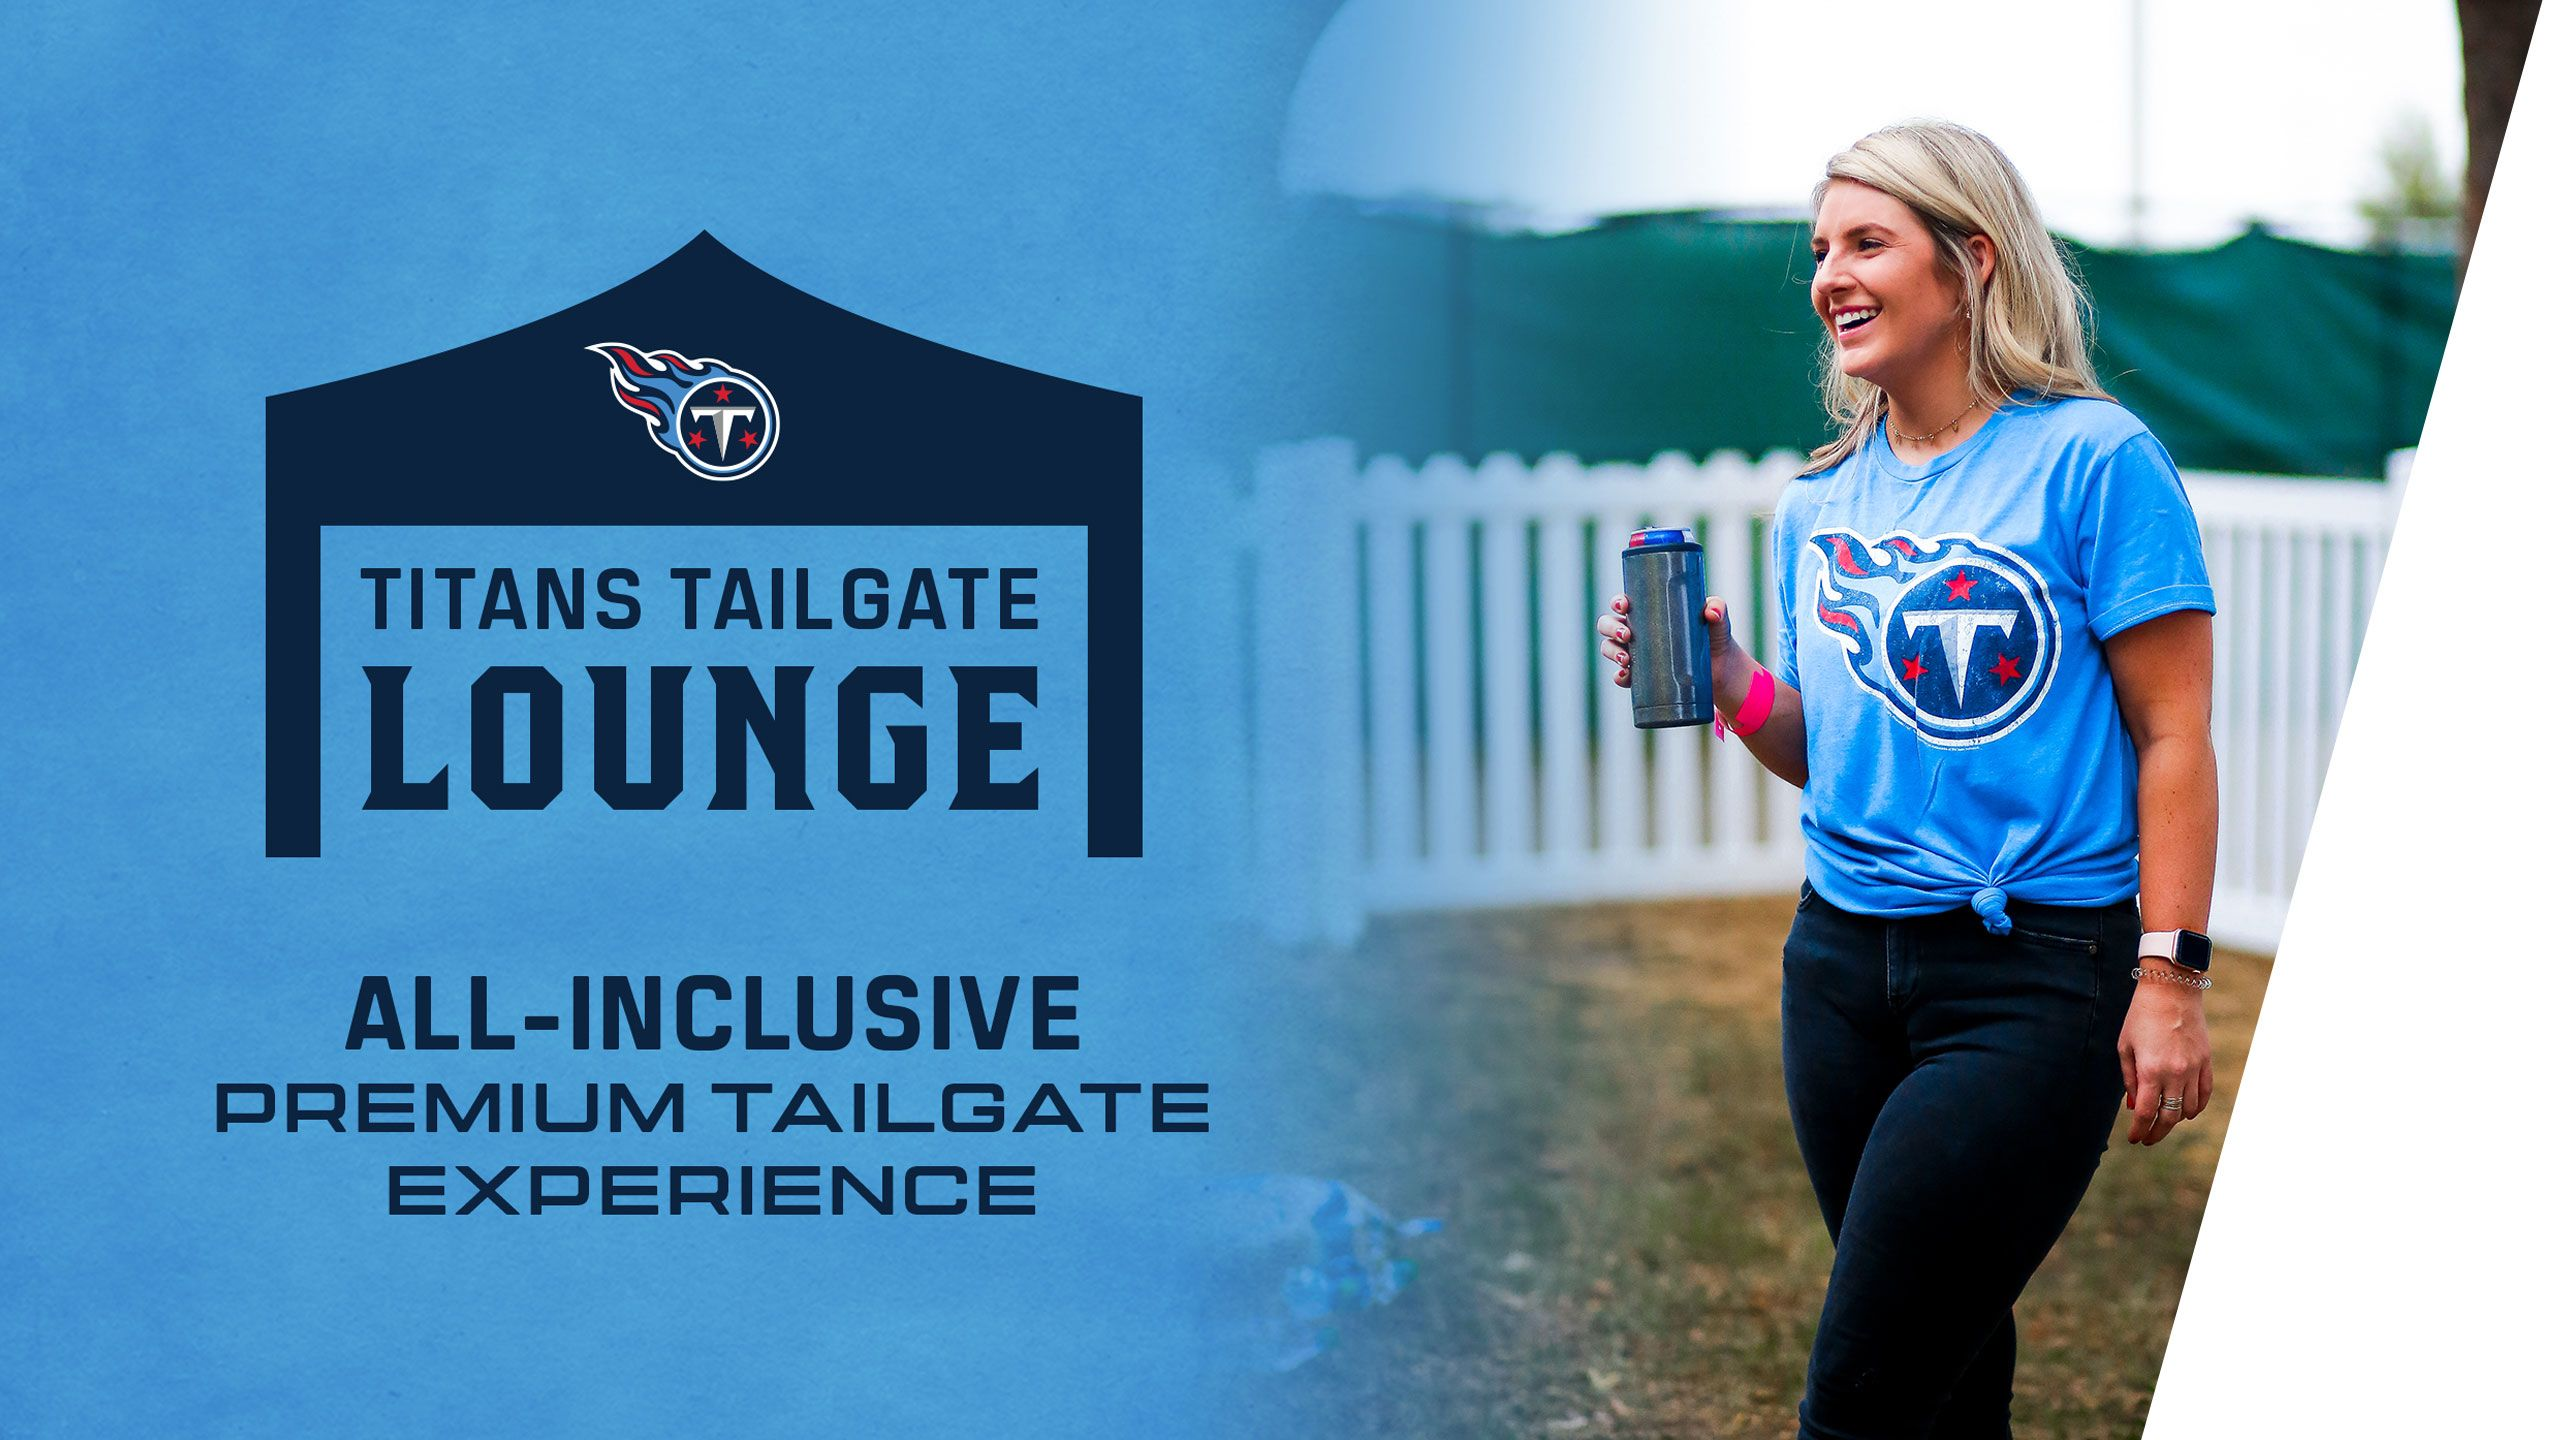 Buy Titans Tailgate Lounge Tickets